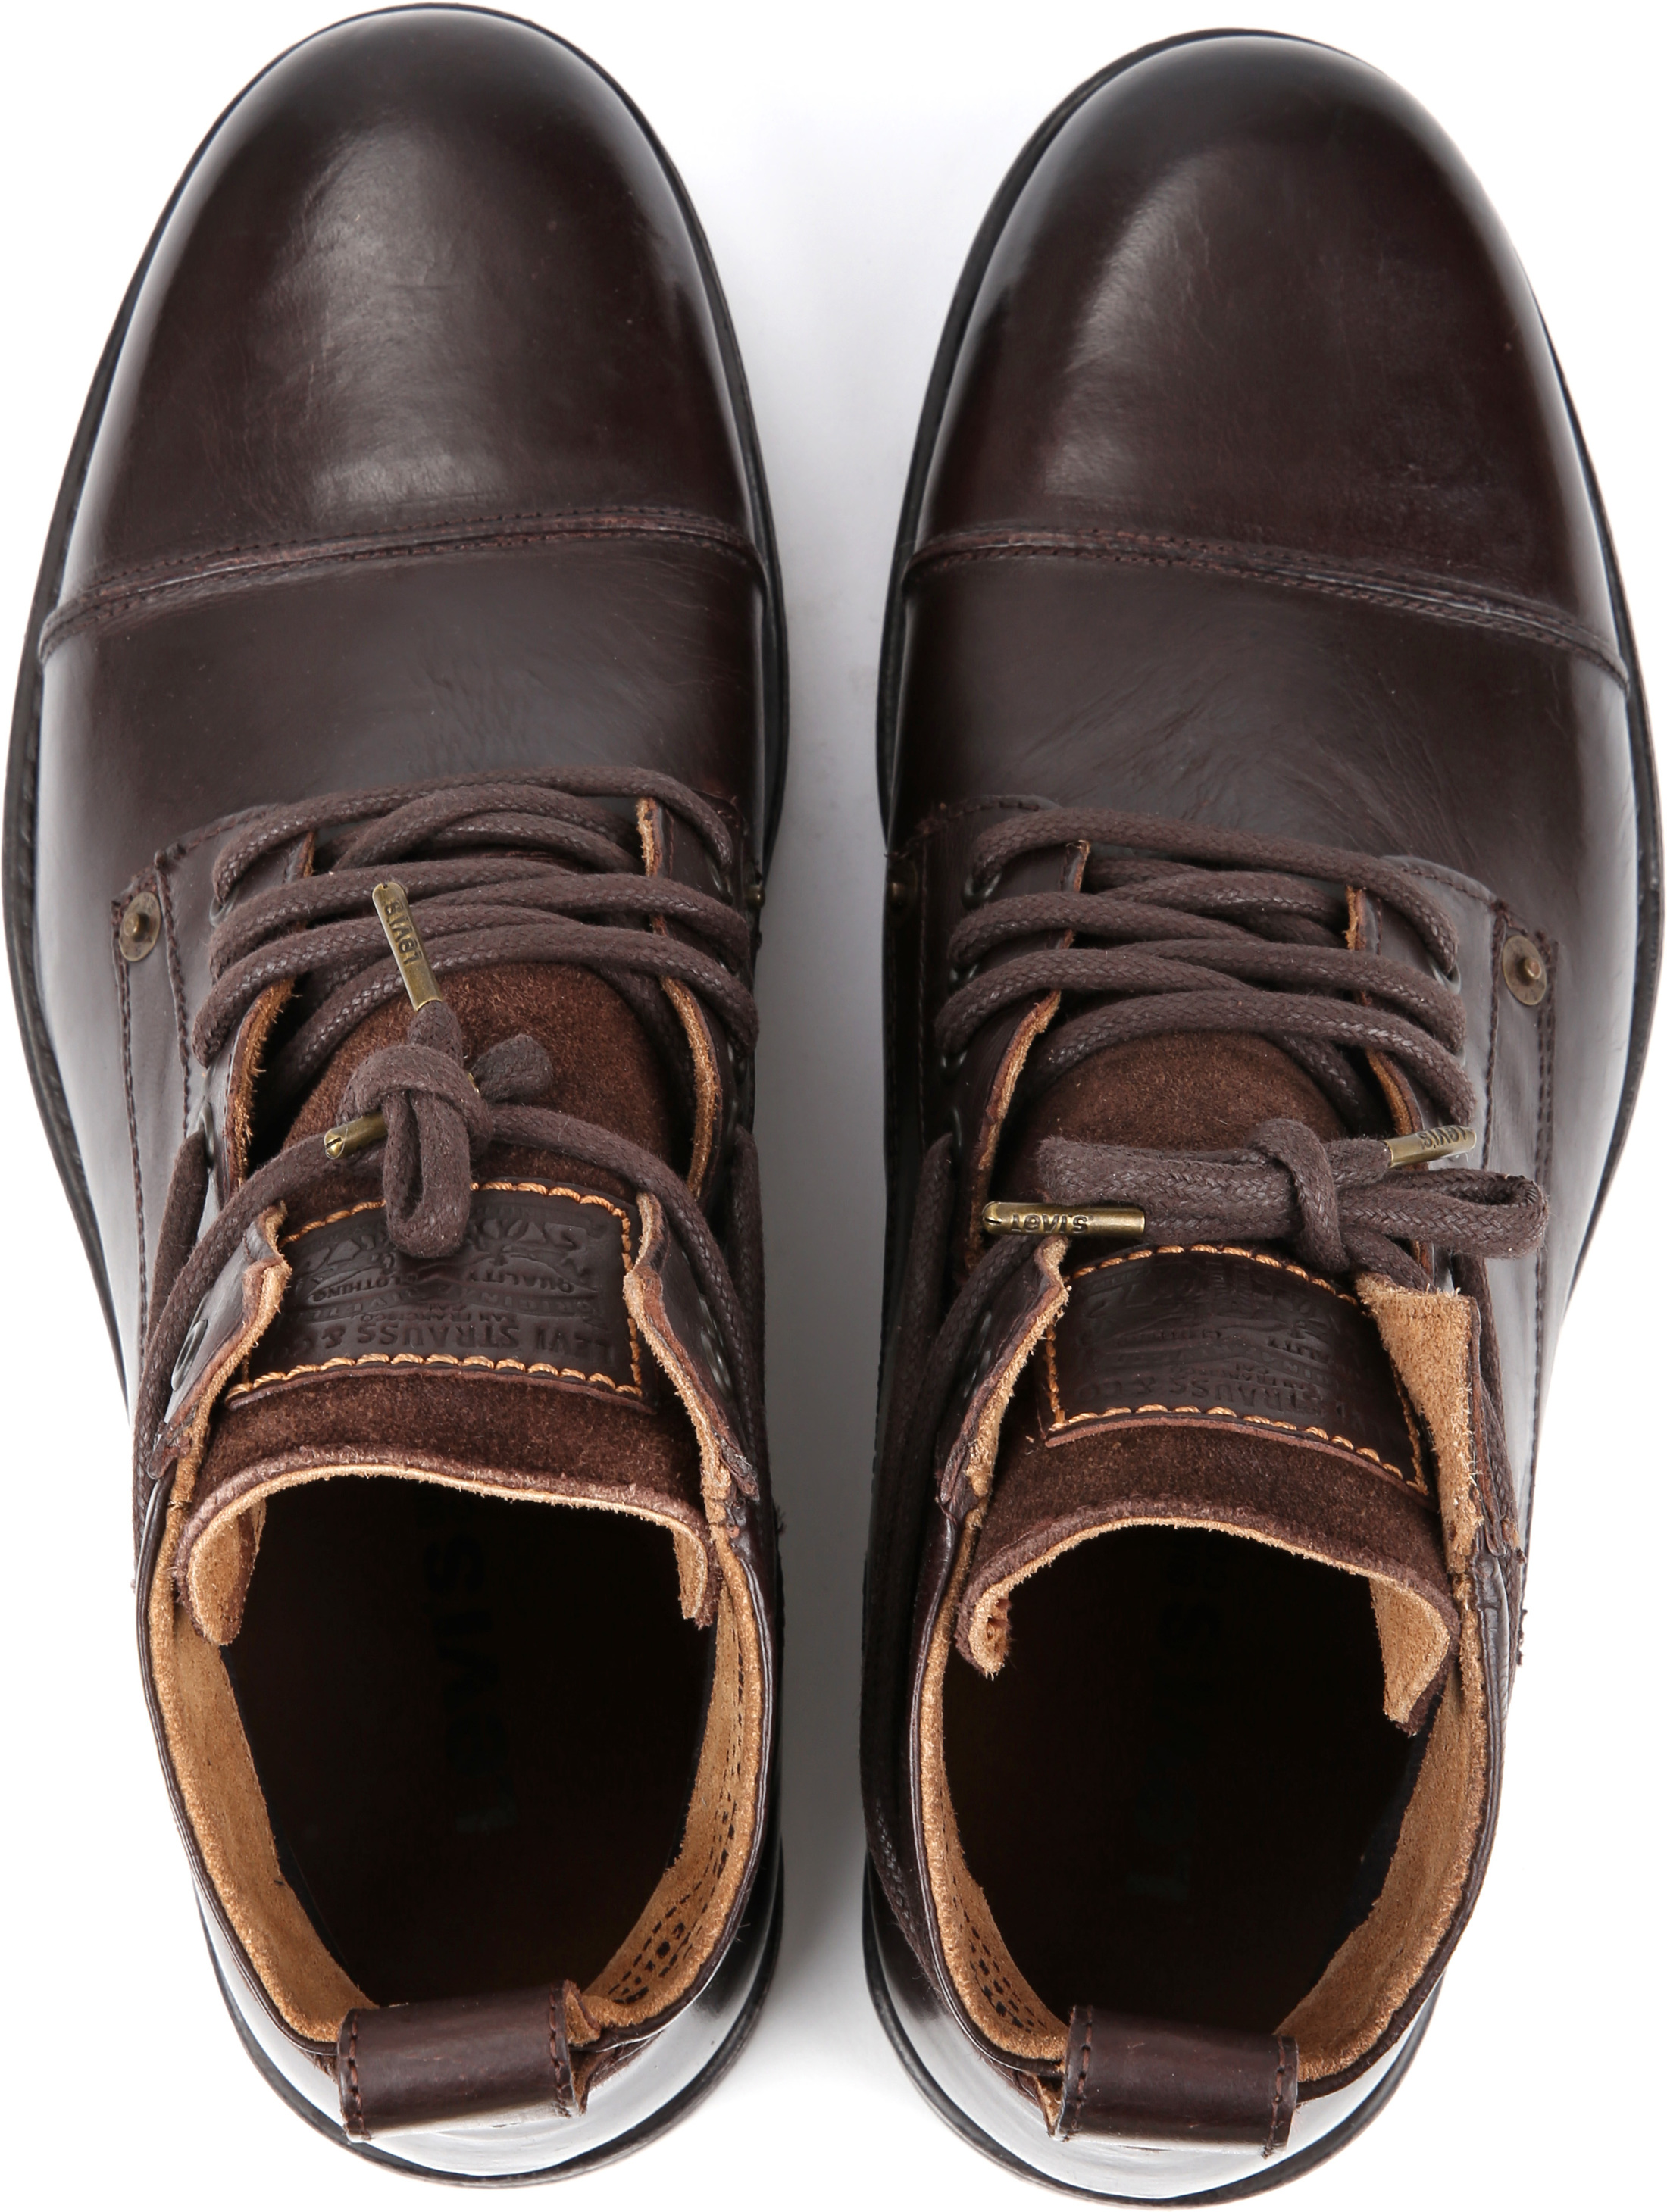 Levi's Boots Emerson Dark Brown Lether foto 2